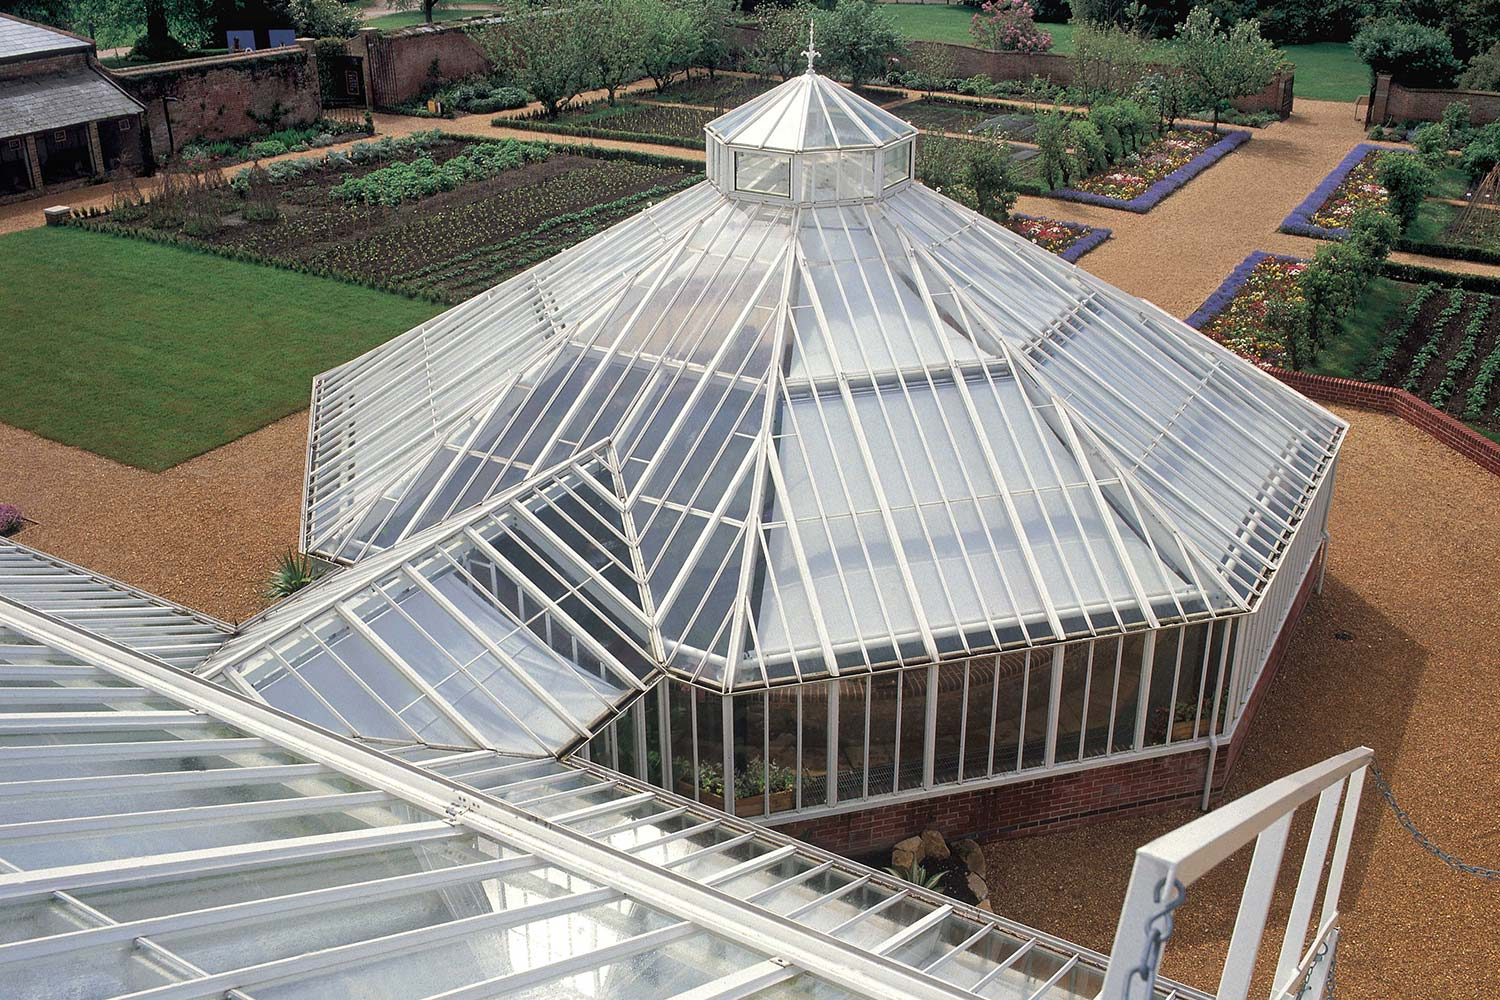 An octagonal lily pond greenhouse attached to a stove house (Alitex)